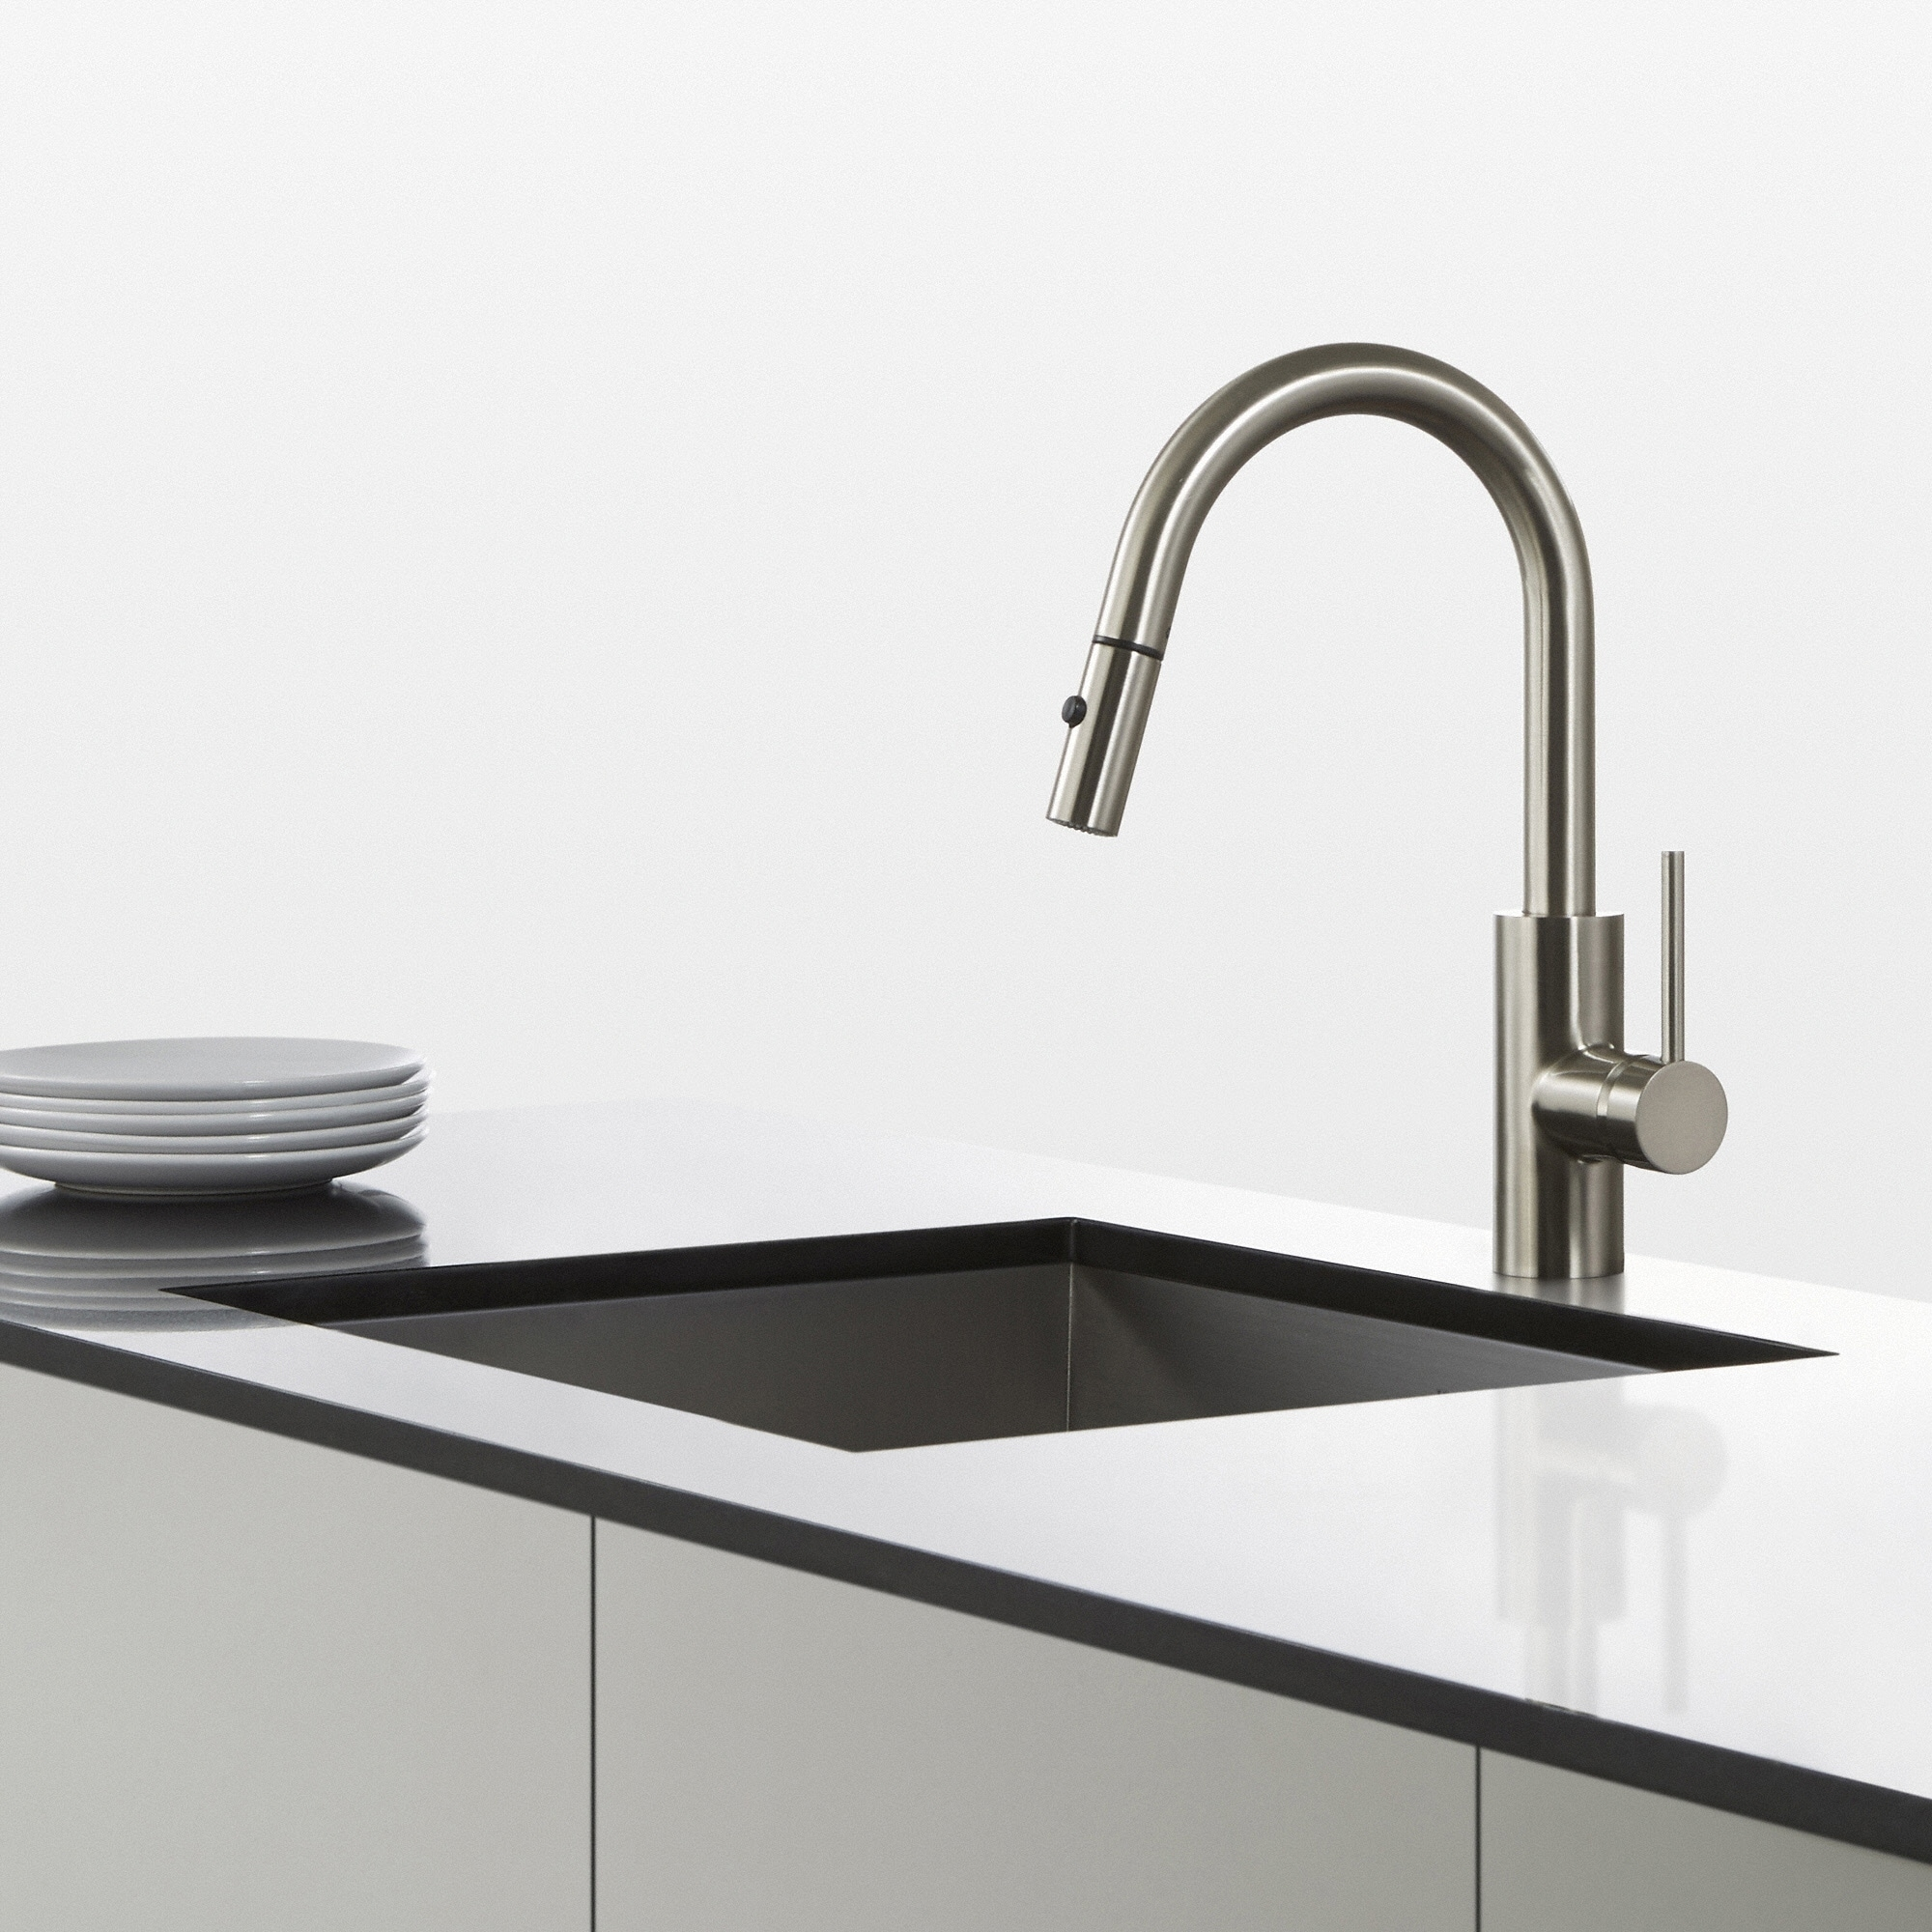 Kraus Kpf 2620 Oletto 1 Handle 2 Function Sprayhead Pull Down Kitchen Faucet Free Shipping Today 10482062